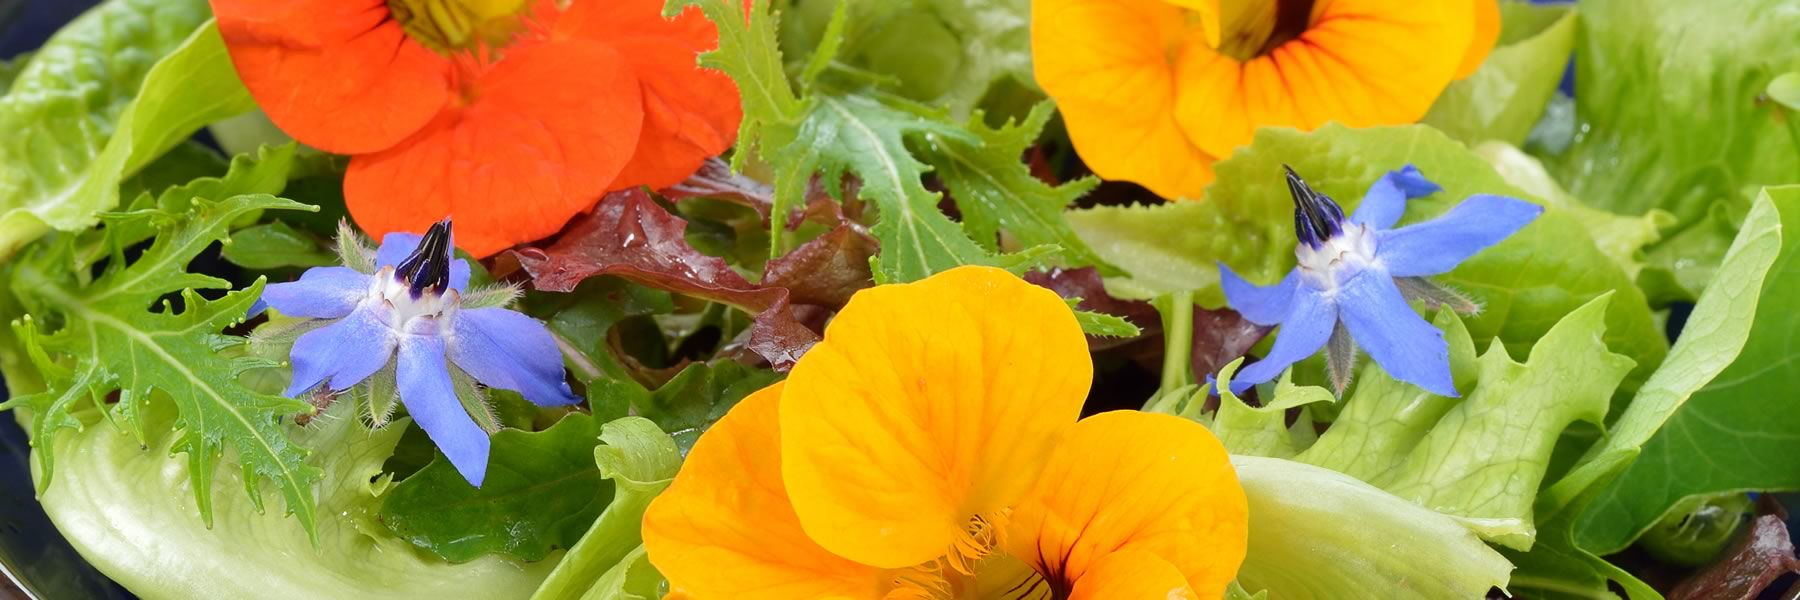 Avoid using any chemicals when growing your edible flower plants.